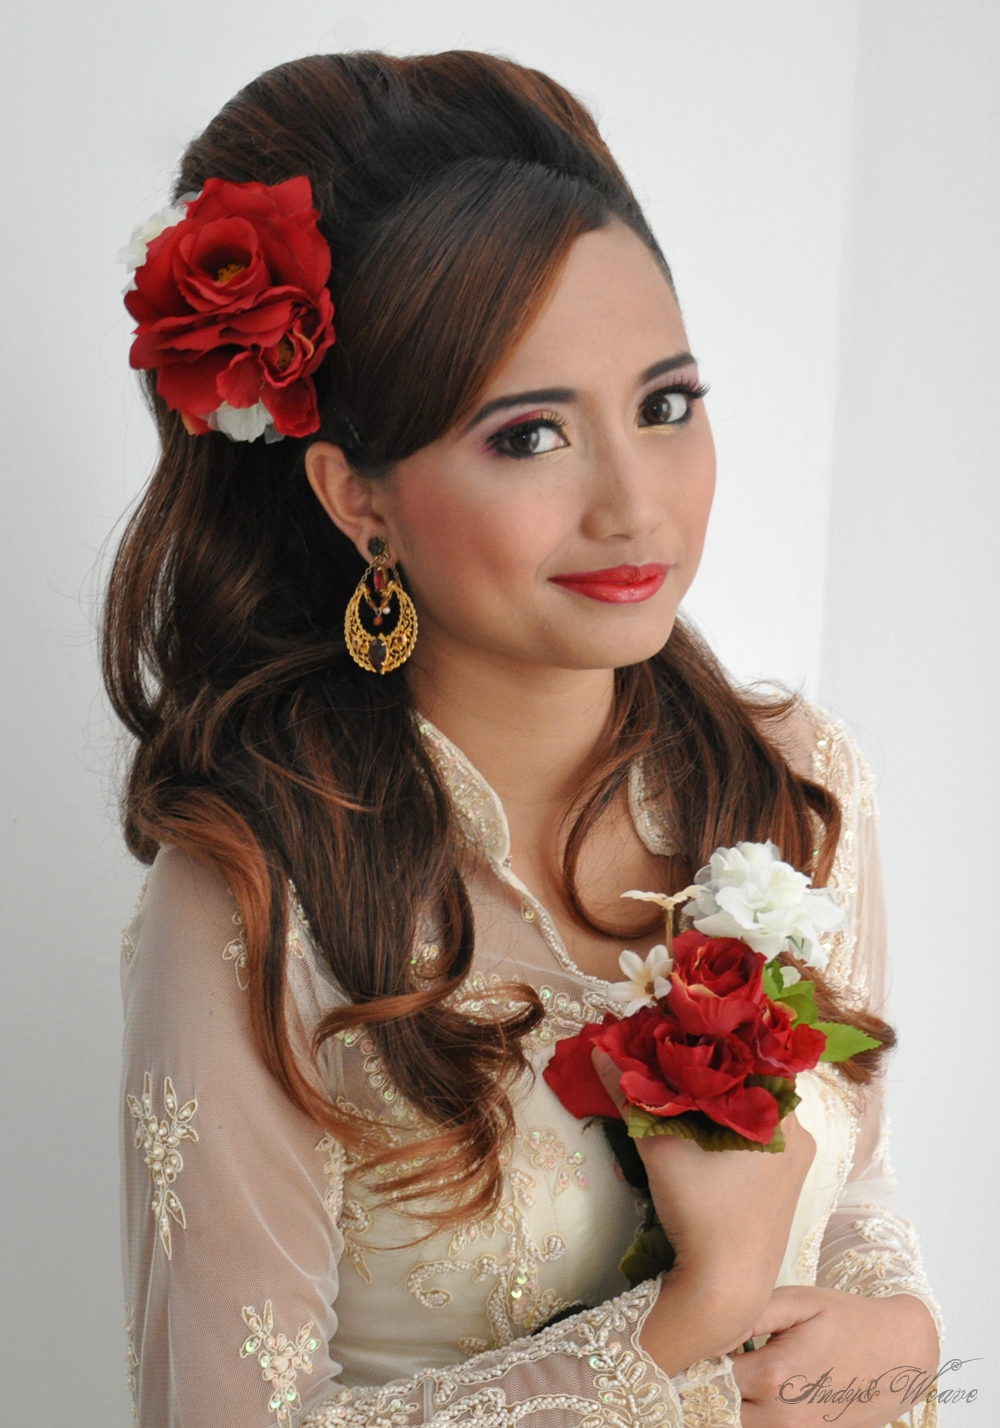 Hair accessories singapore - Bridal Make Up And Bridal Hairstyling Hair Extensions Big Curls Setting Hair Accessories Was Done On Model Sirah